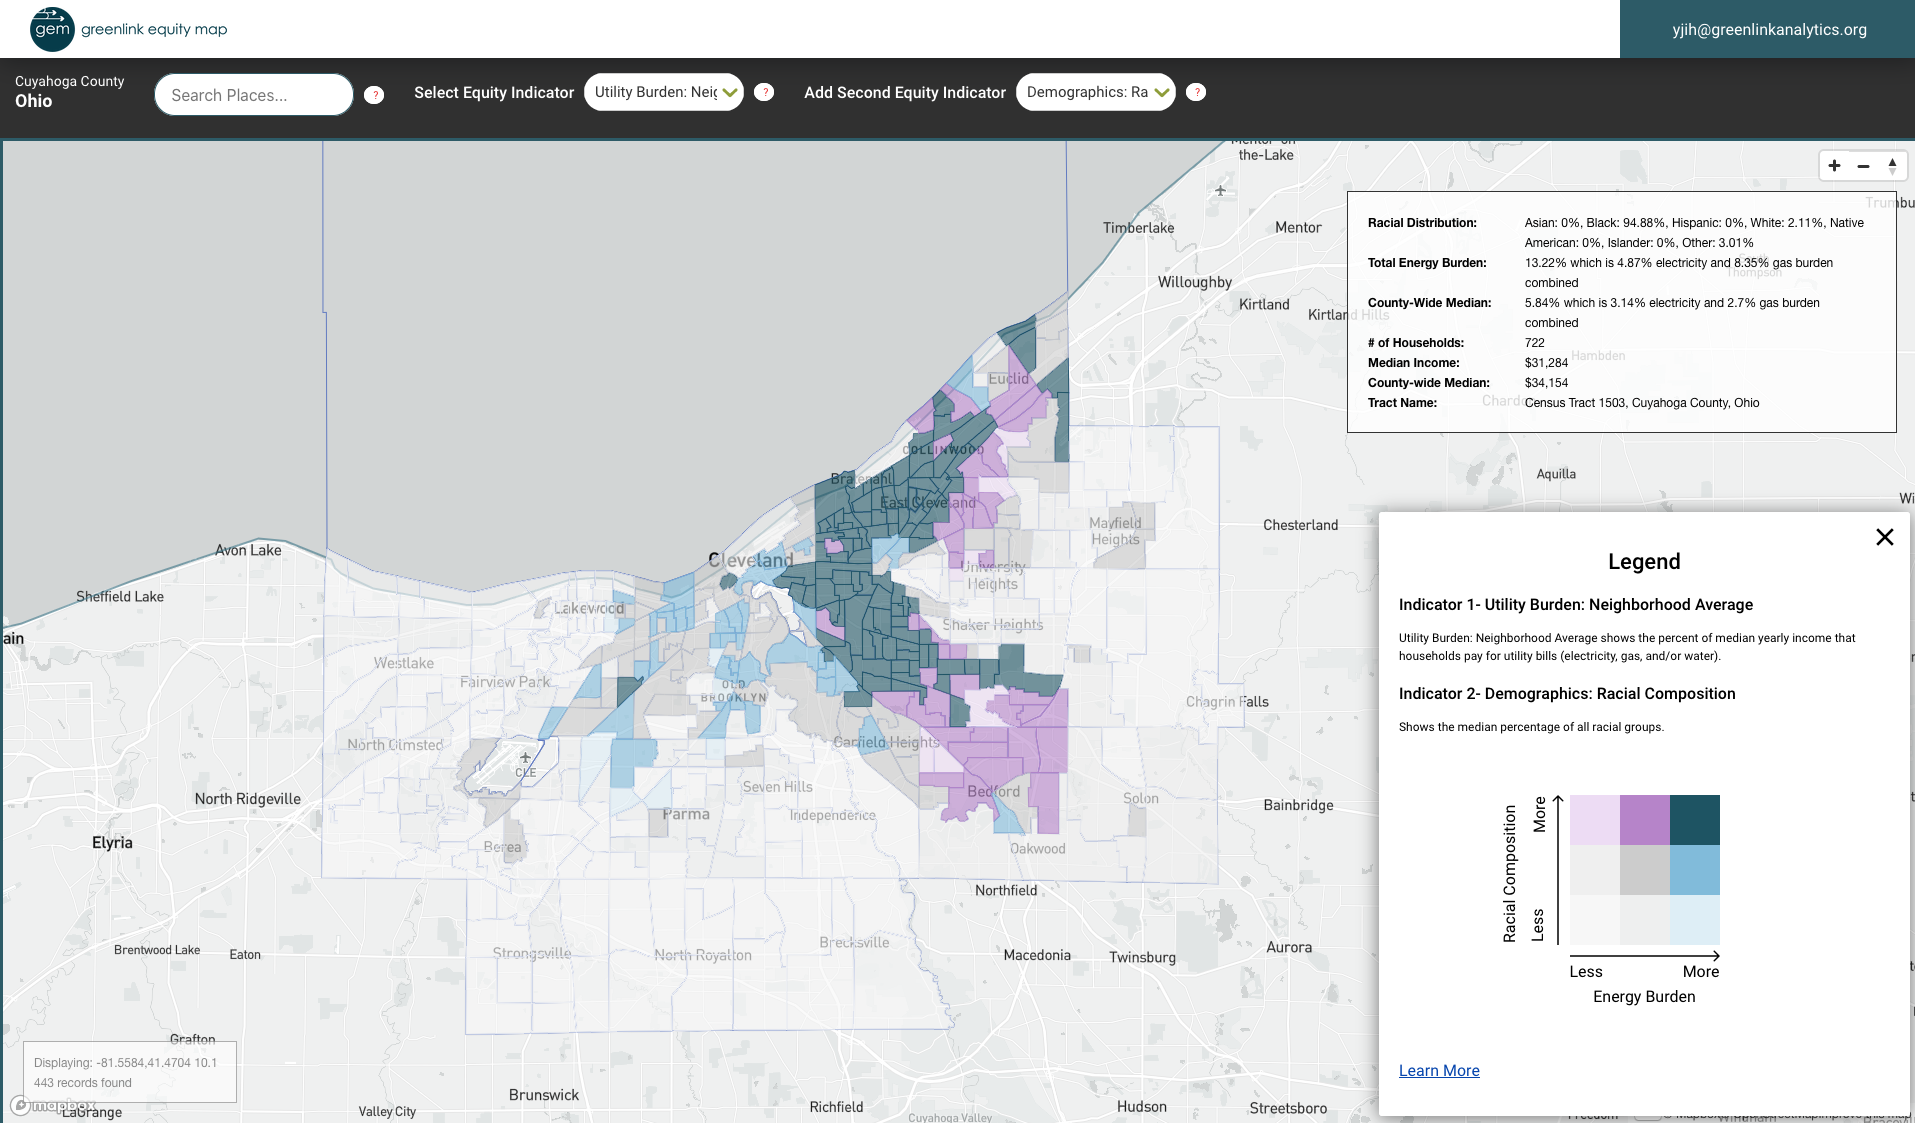 The view of energy burden in predominantly Black communities in Cleveland.